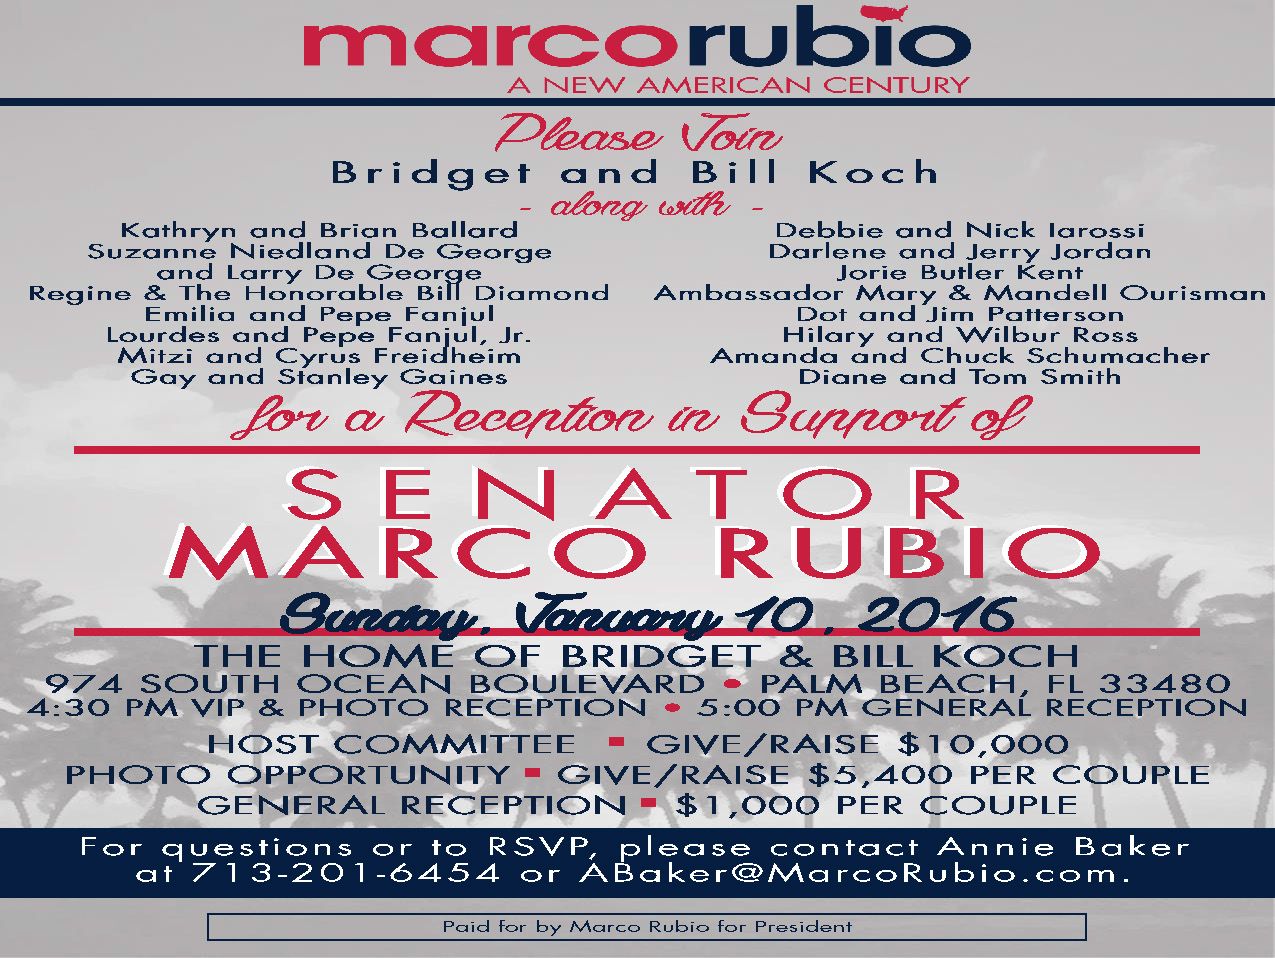 Marco Rubio Palm Beach Save the Date - 01 10 16_Page_1